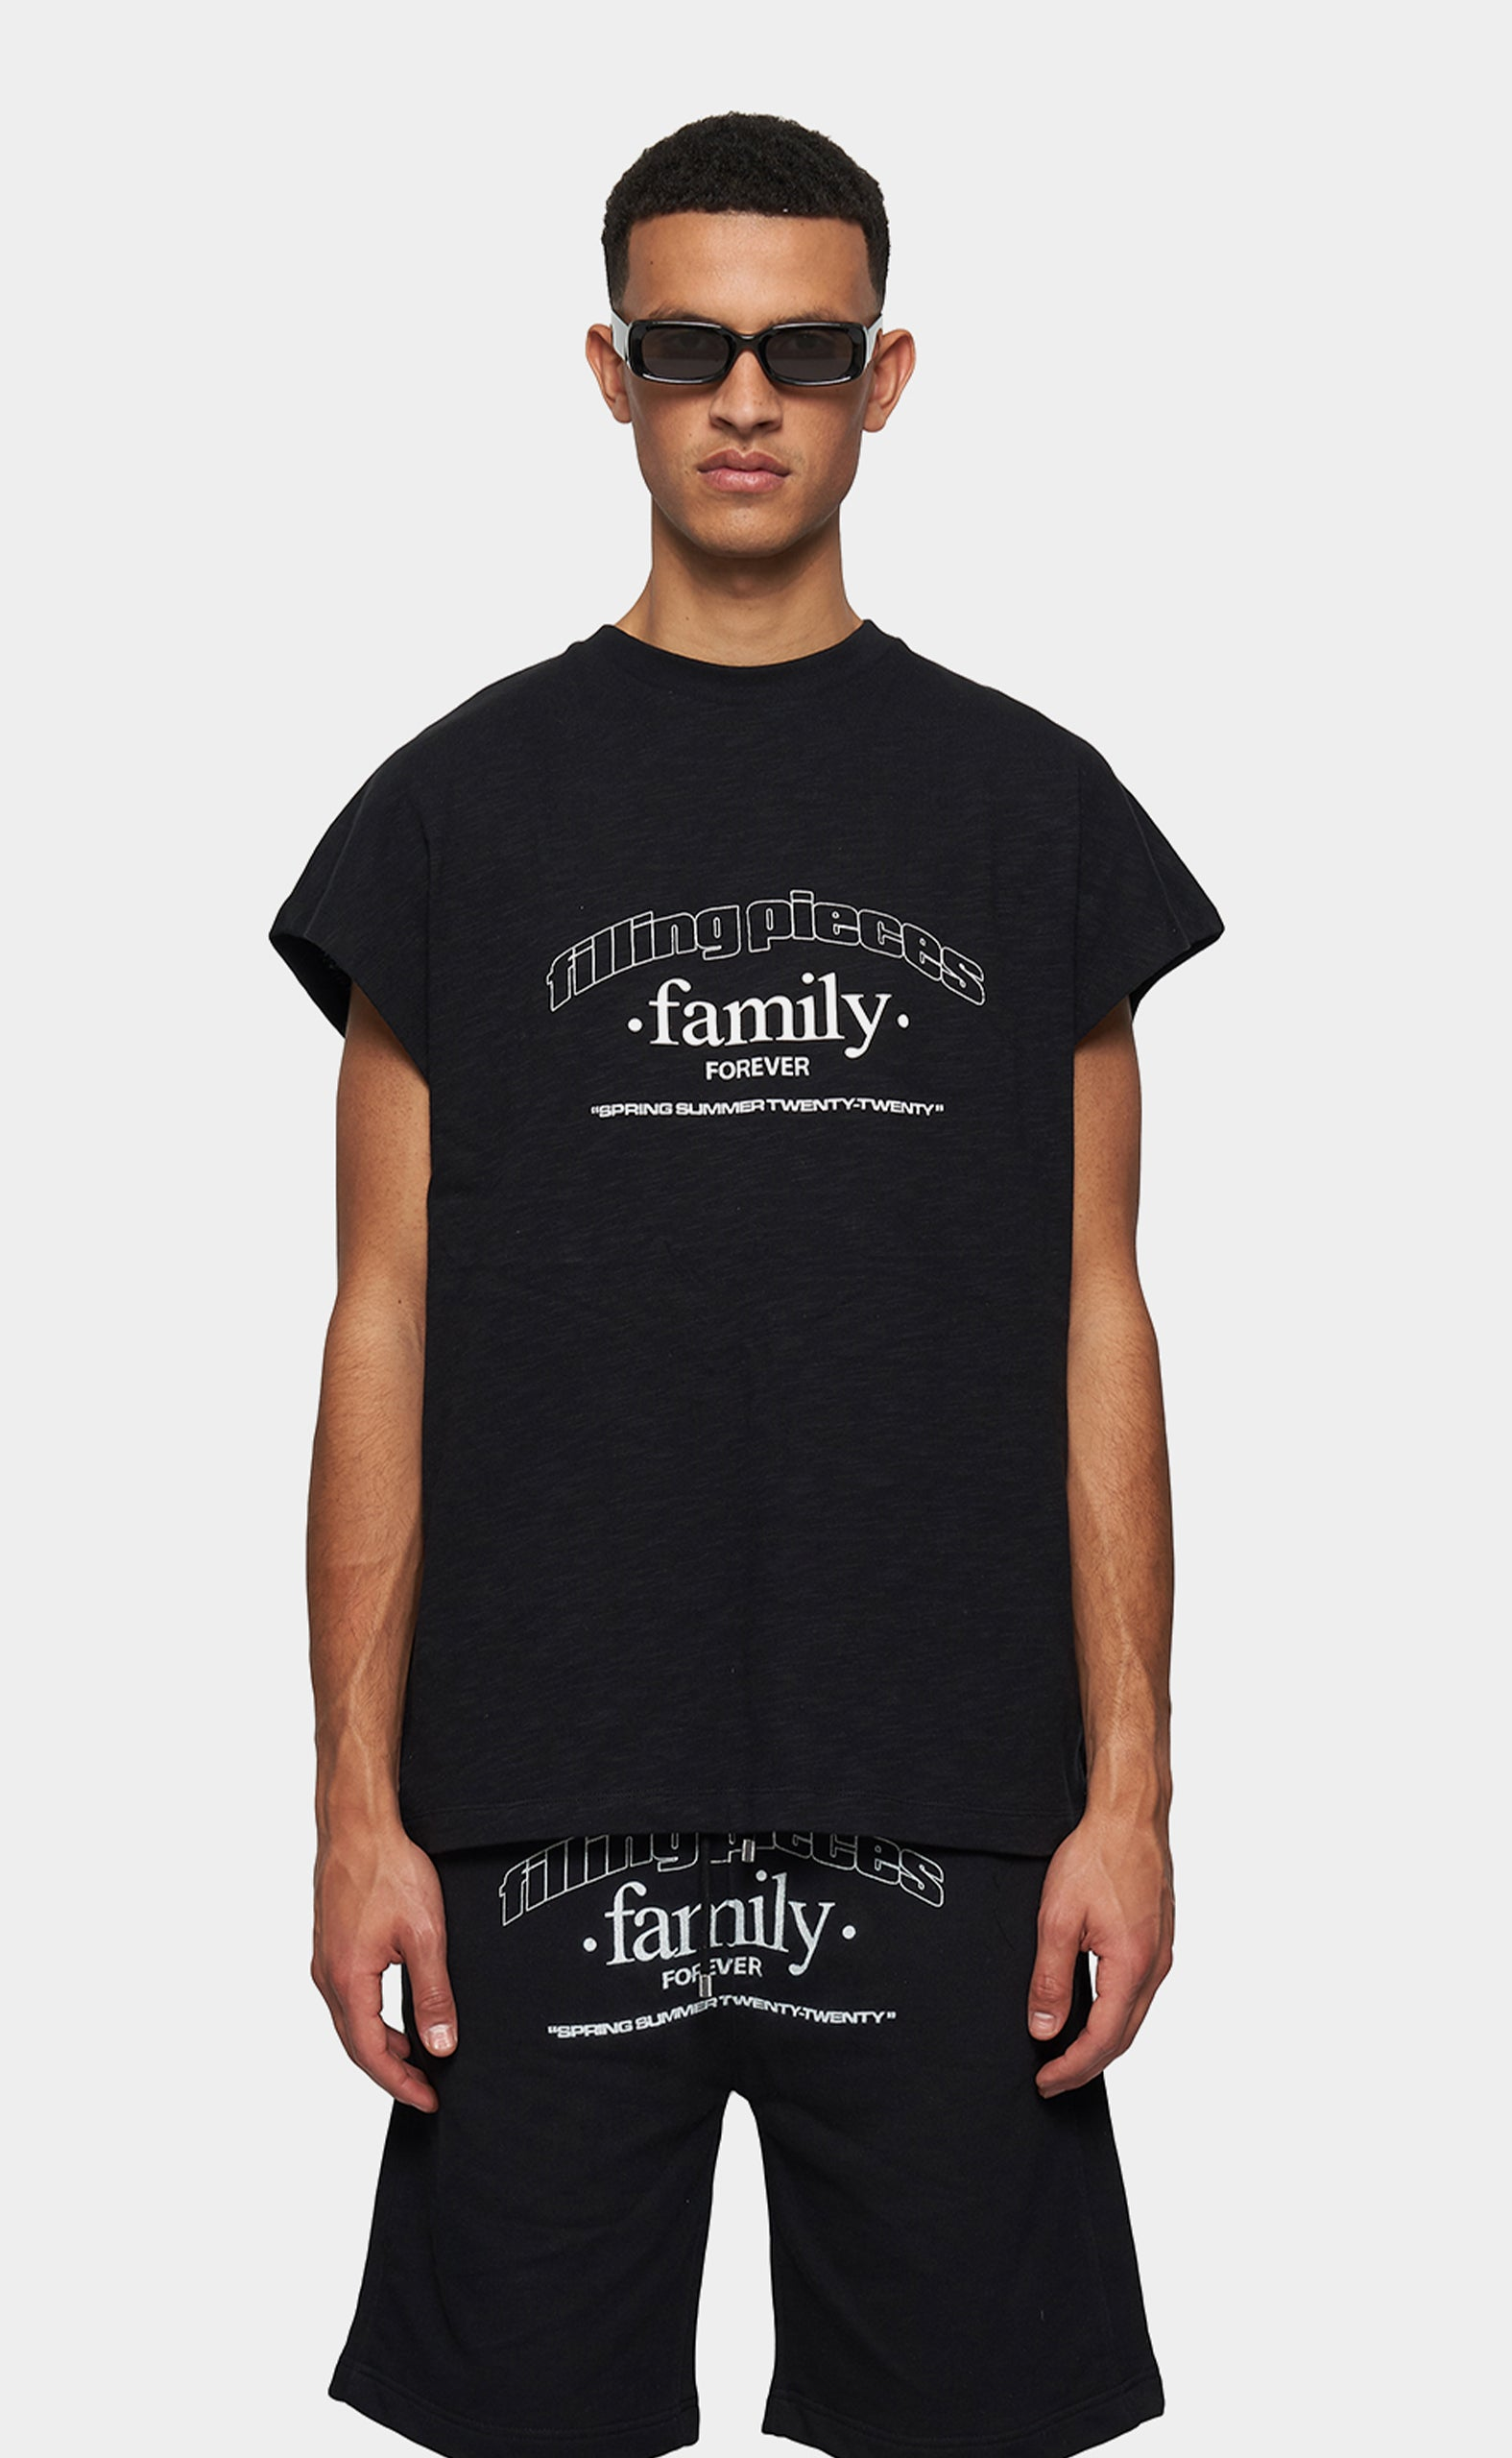 Graphic Sleeveless Tee FP Family Black - men